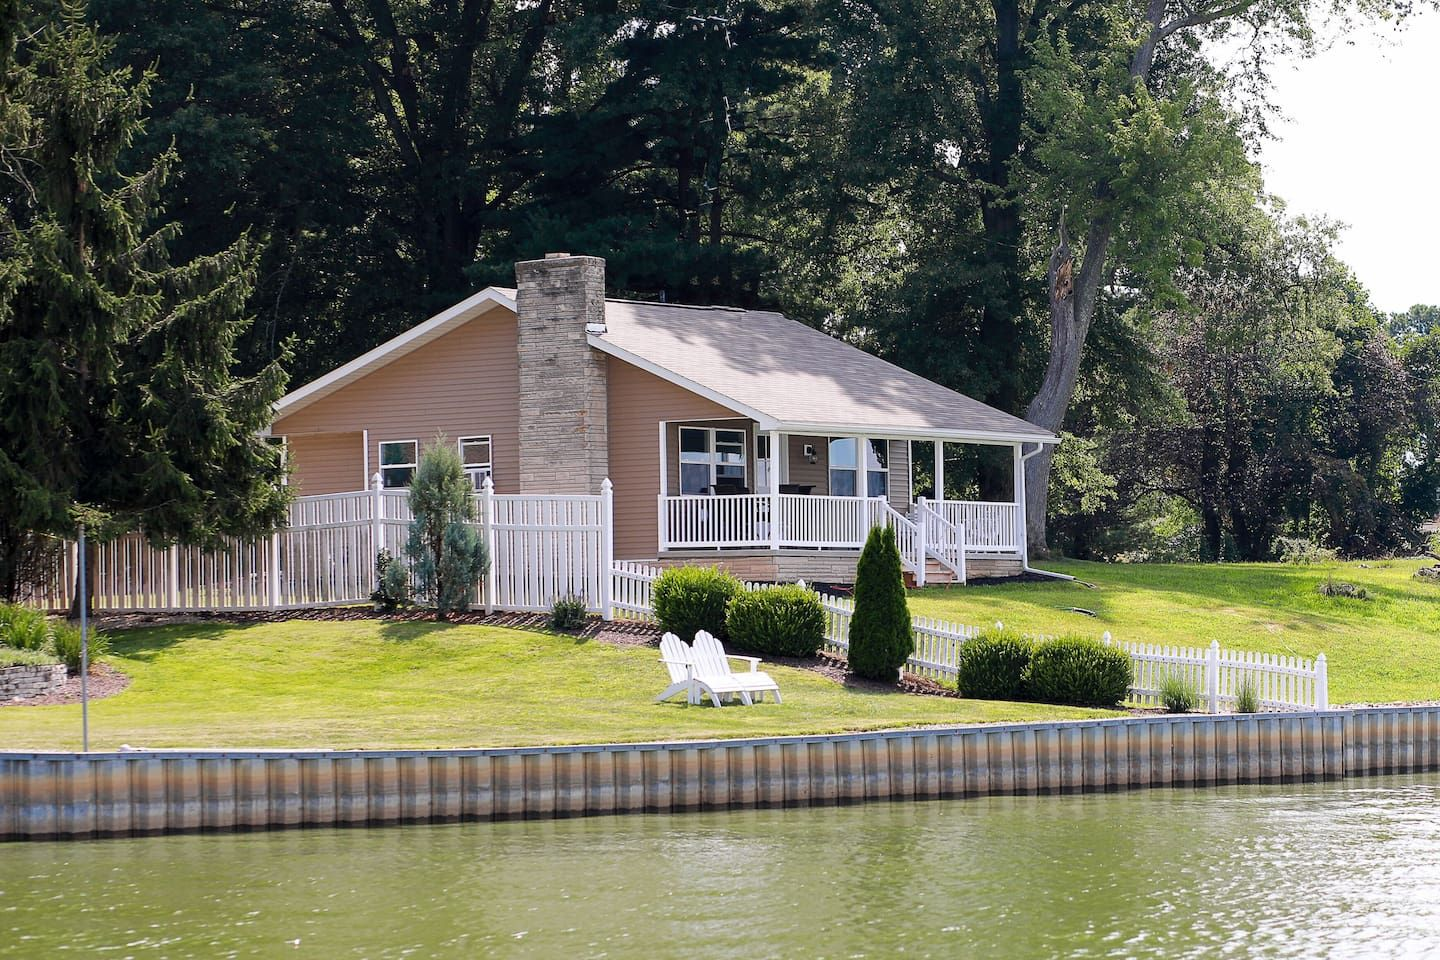 Little House On Buckeye Lake Cottages For Rent In Thornville Buckeye Lake Lake Cottage Ohio Vacations